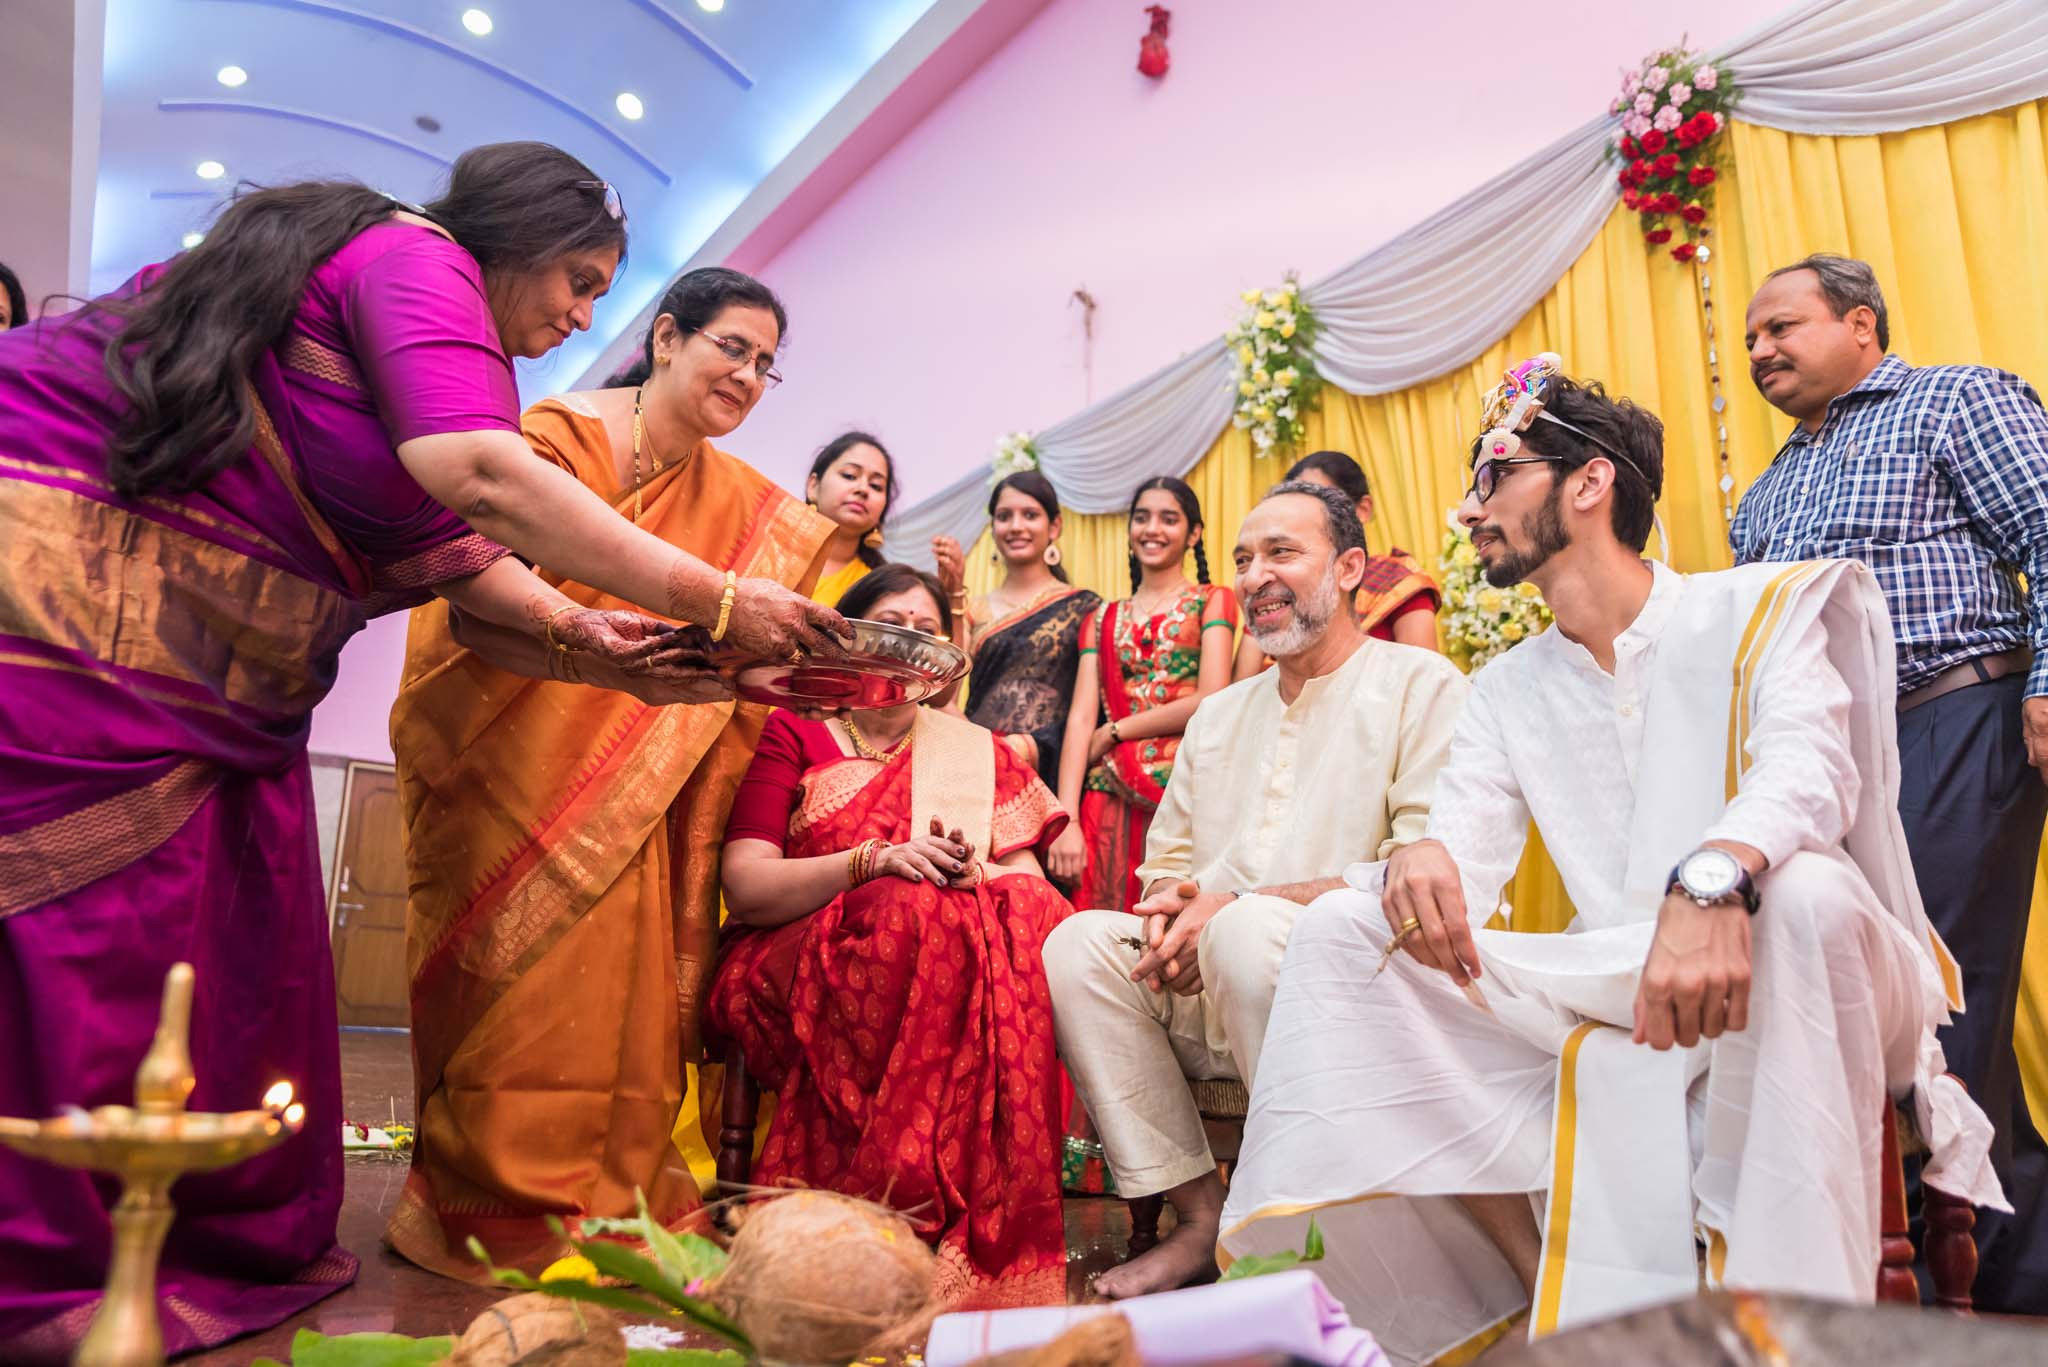 WhatKnot-Candid-Wedding-Photography-Mumbai-Bangalore-108